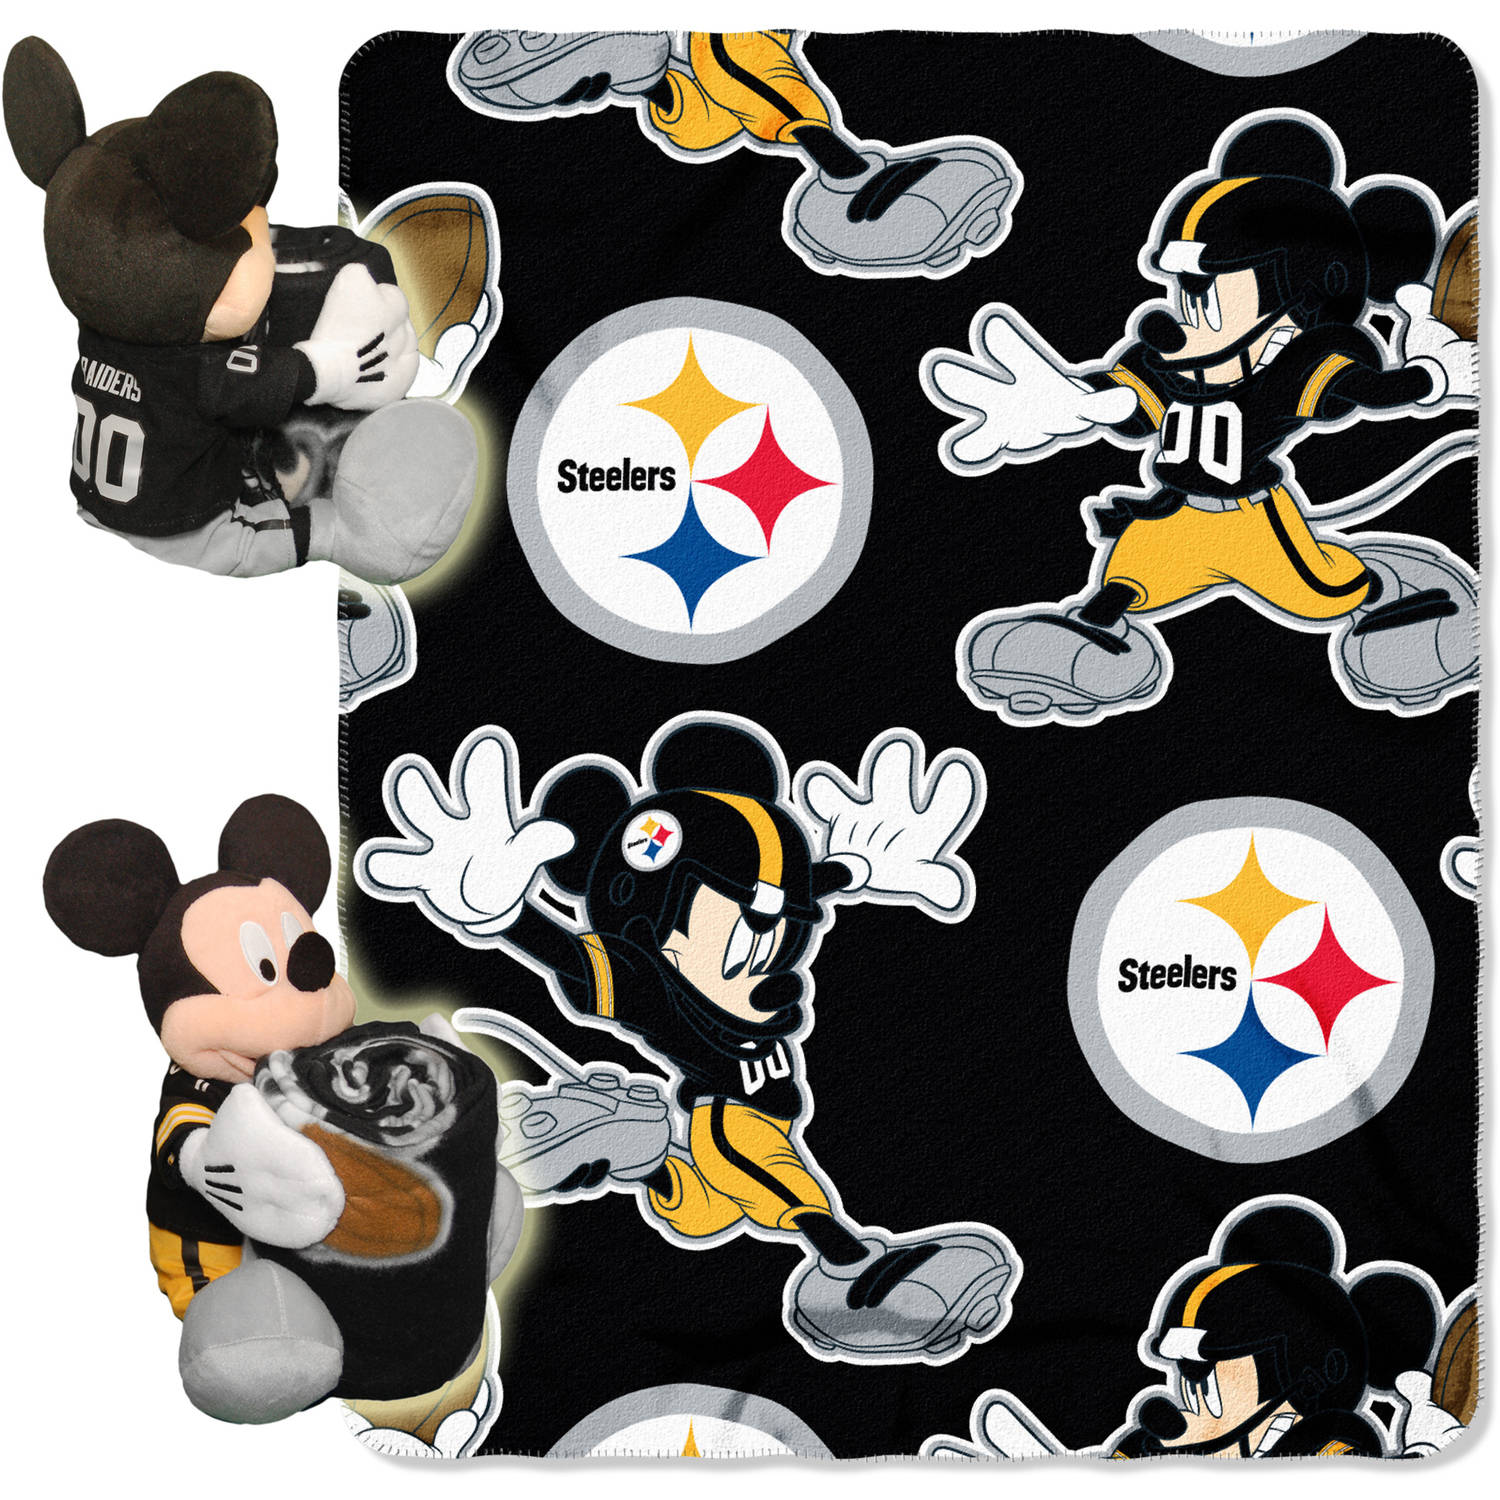 "Disney NFL Pittsburgh Steelers Hugger Pillow and 40"" x 50"" Throw Set"